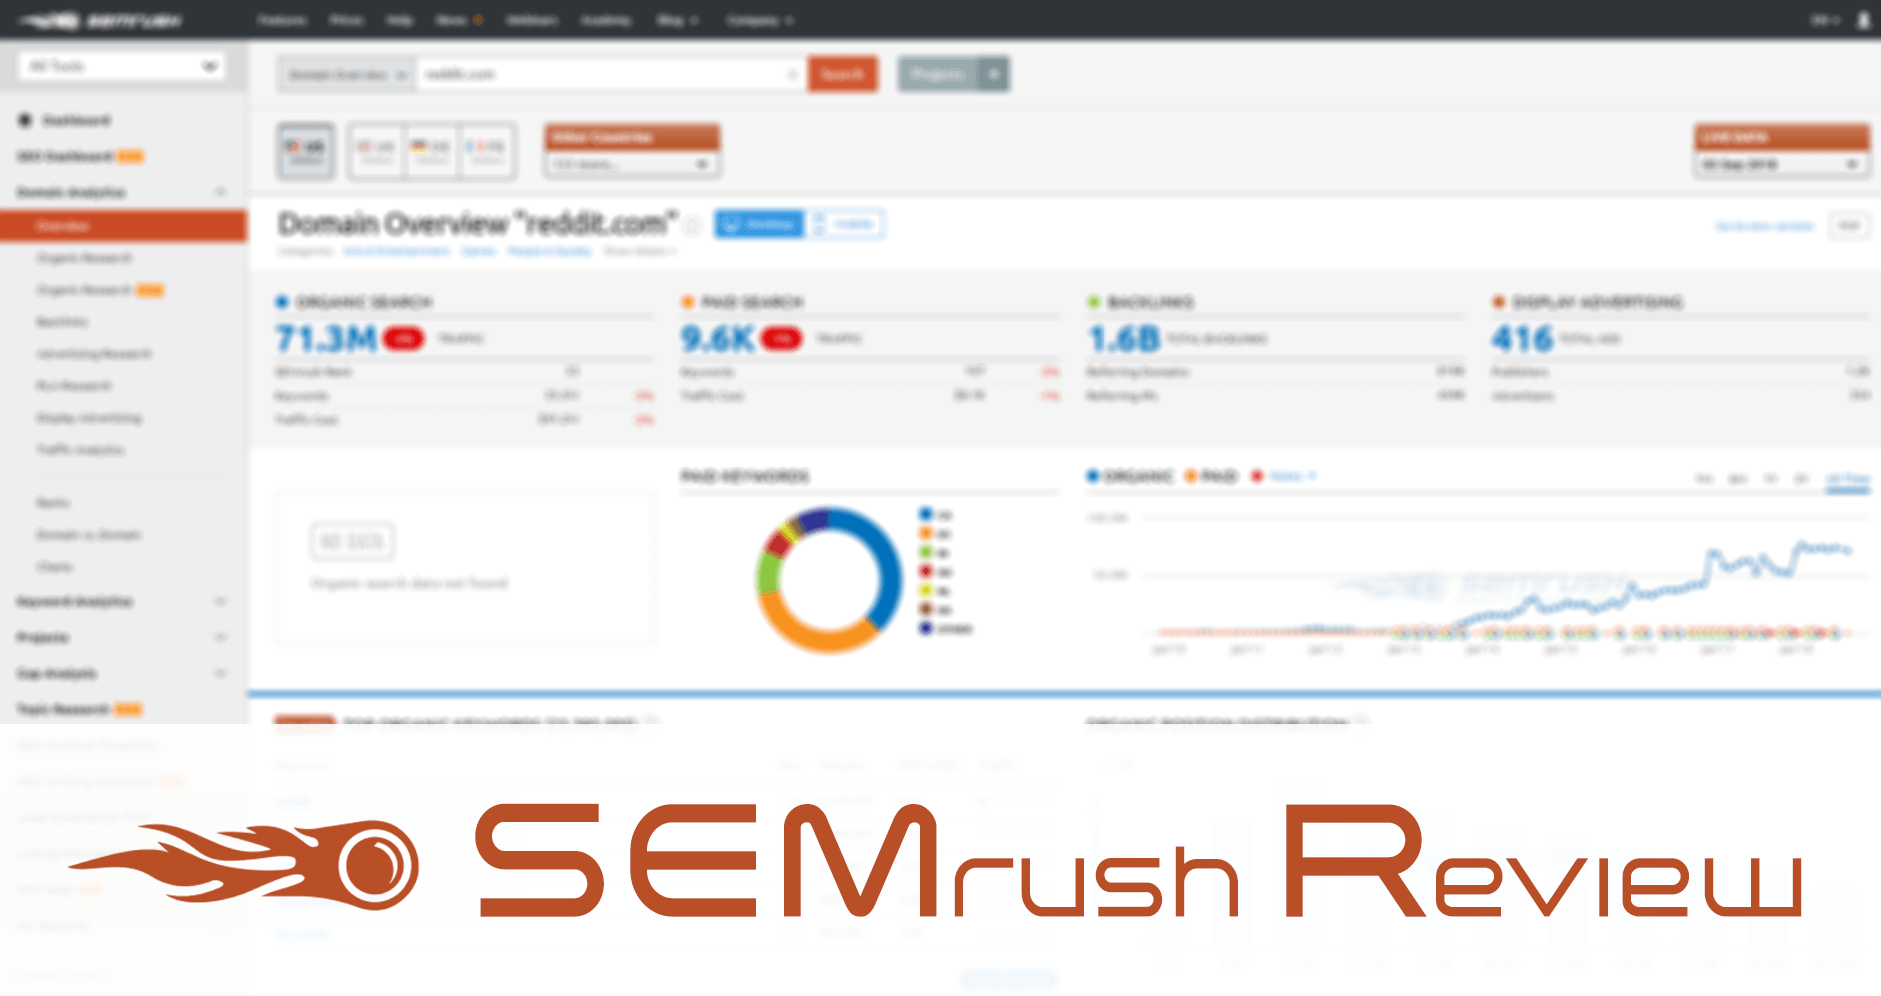 Voucher Code Printable 20 Semrush